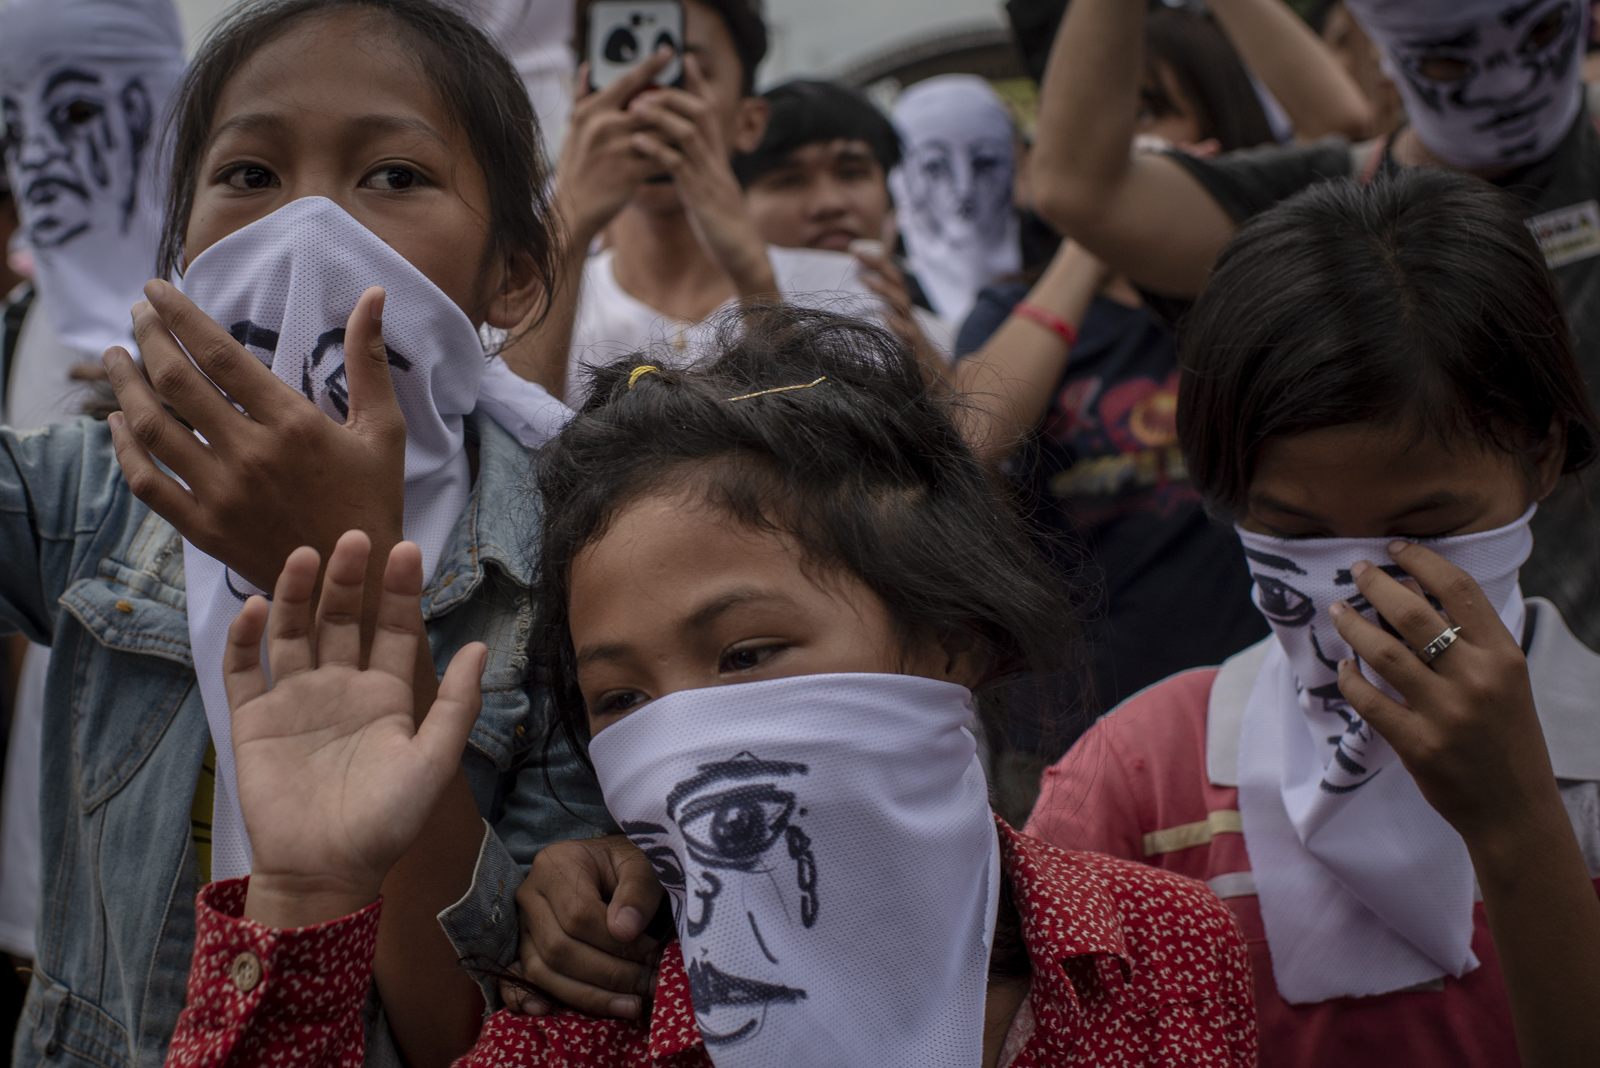 Children whose relatives were killed under the government's war on drugs wear masks to conceal their identities in a protest coinciding President Rodrigo Duterte's State of the Nation Address in Quezon City, July 23, 2018.